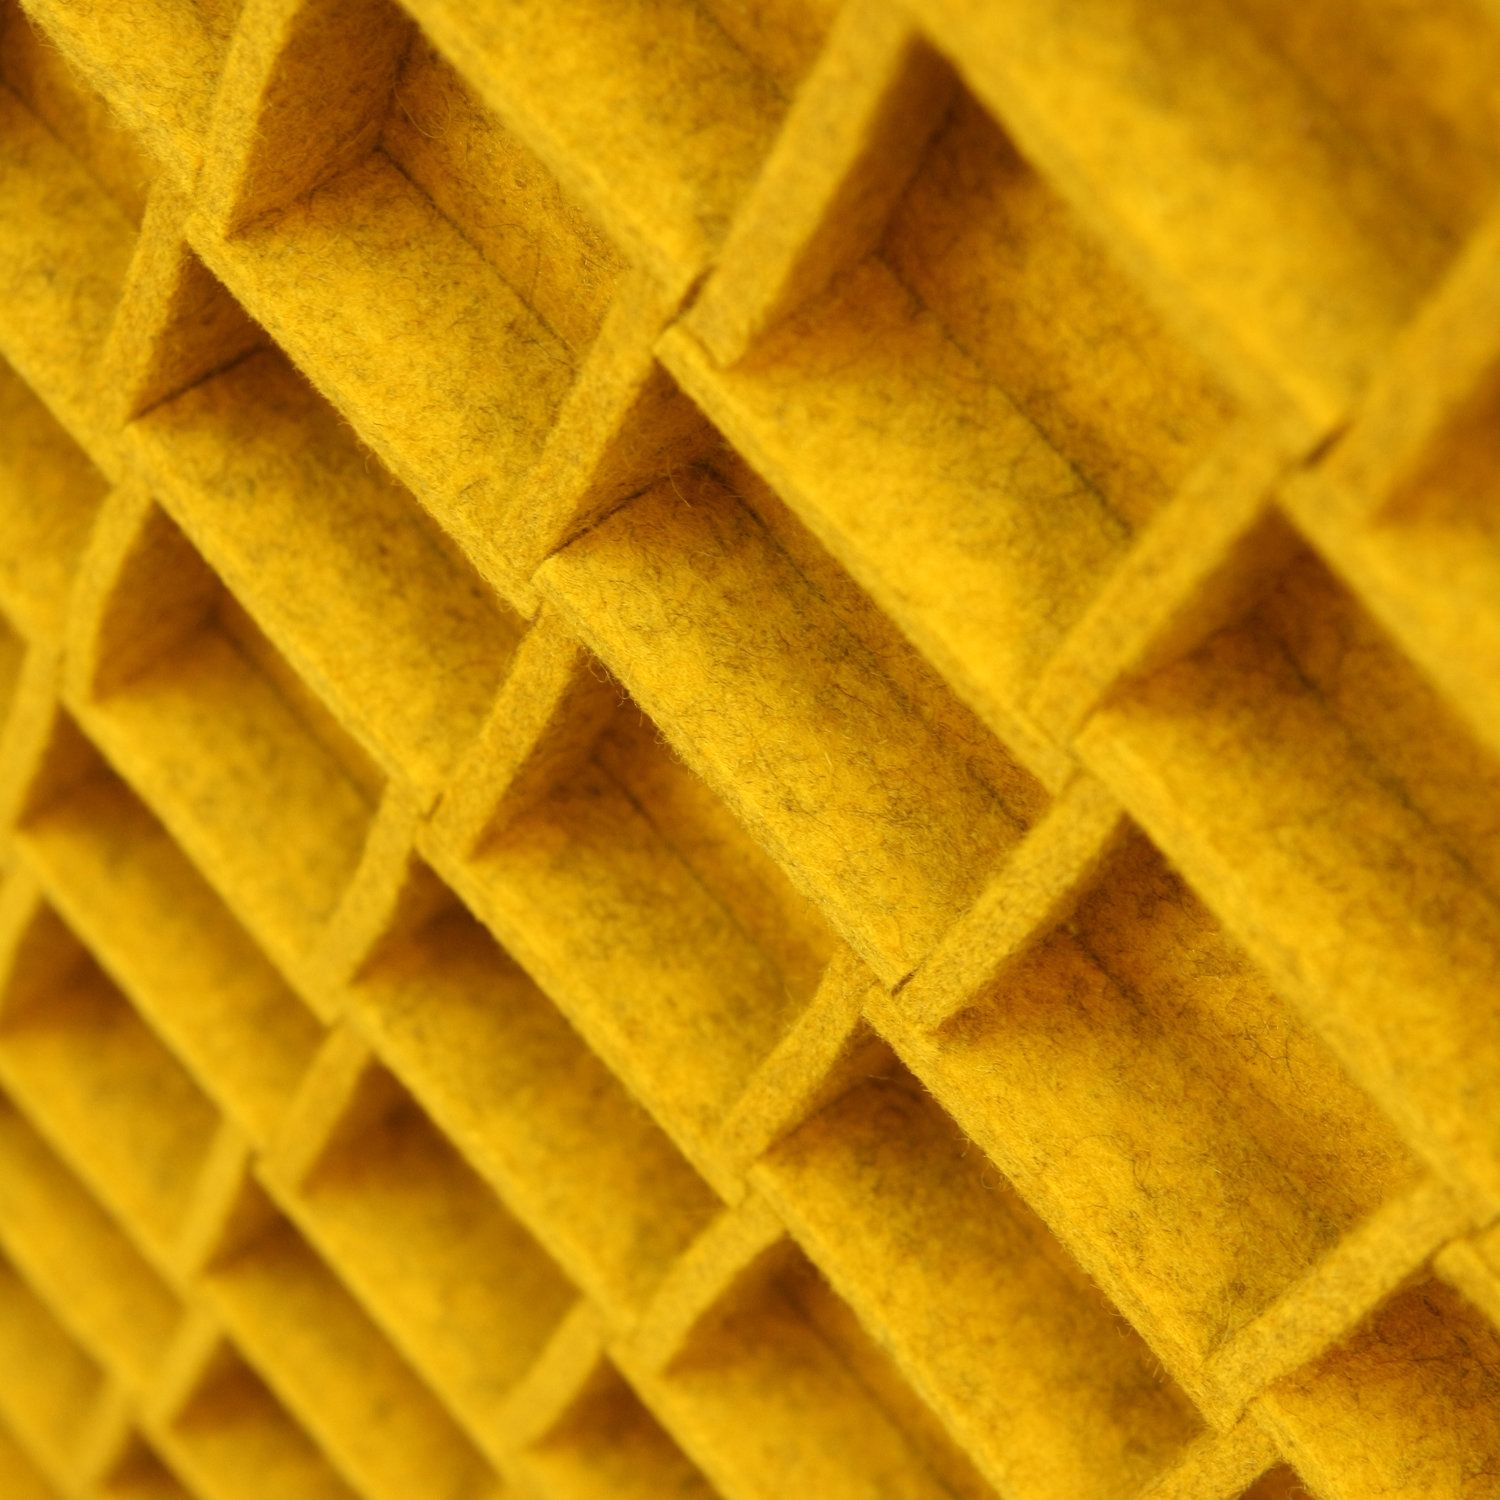 067 Wall Panel - Yellow by Submaterial | Submaterial Wall Panels ...